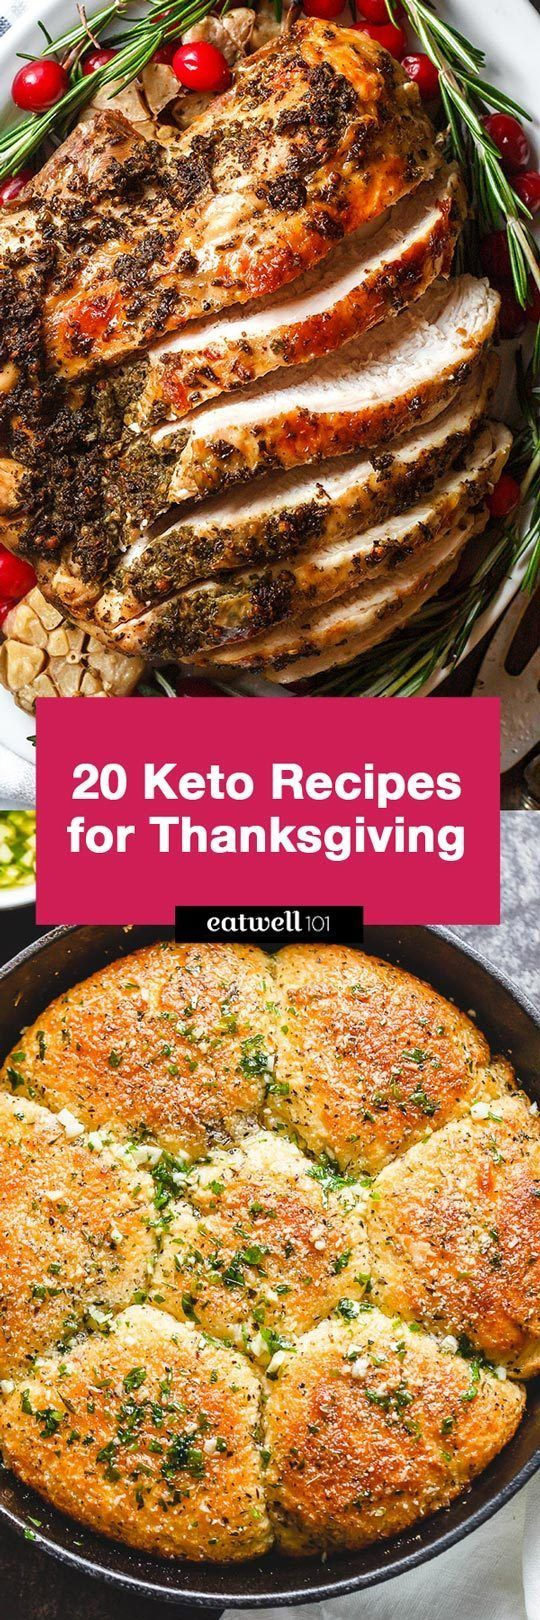 20 Delicious Keto Recipes That Make The Perfect Thanksgiving Dinner! #thanksgivingrecipes